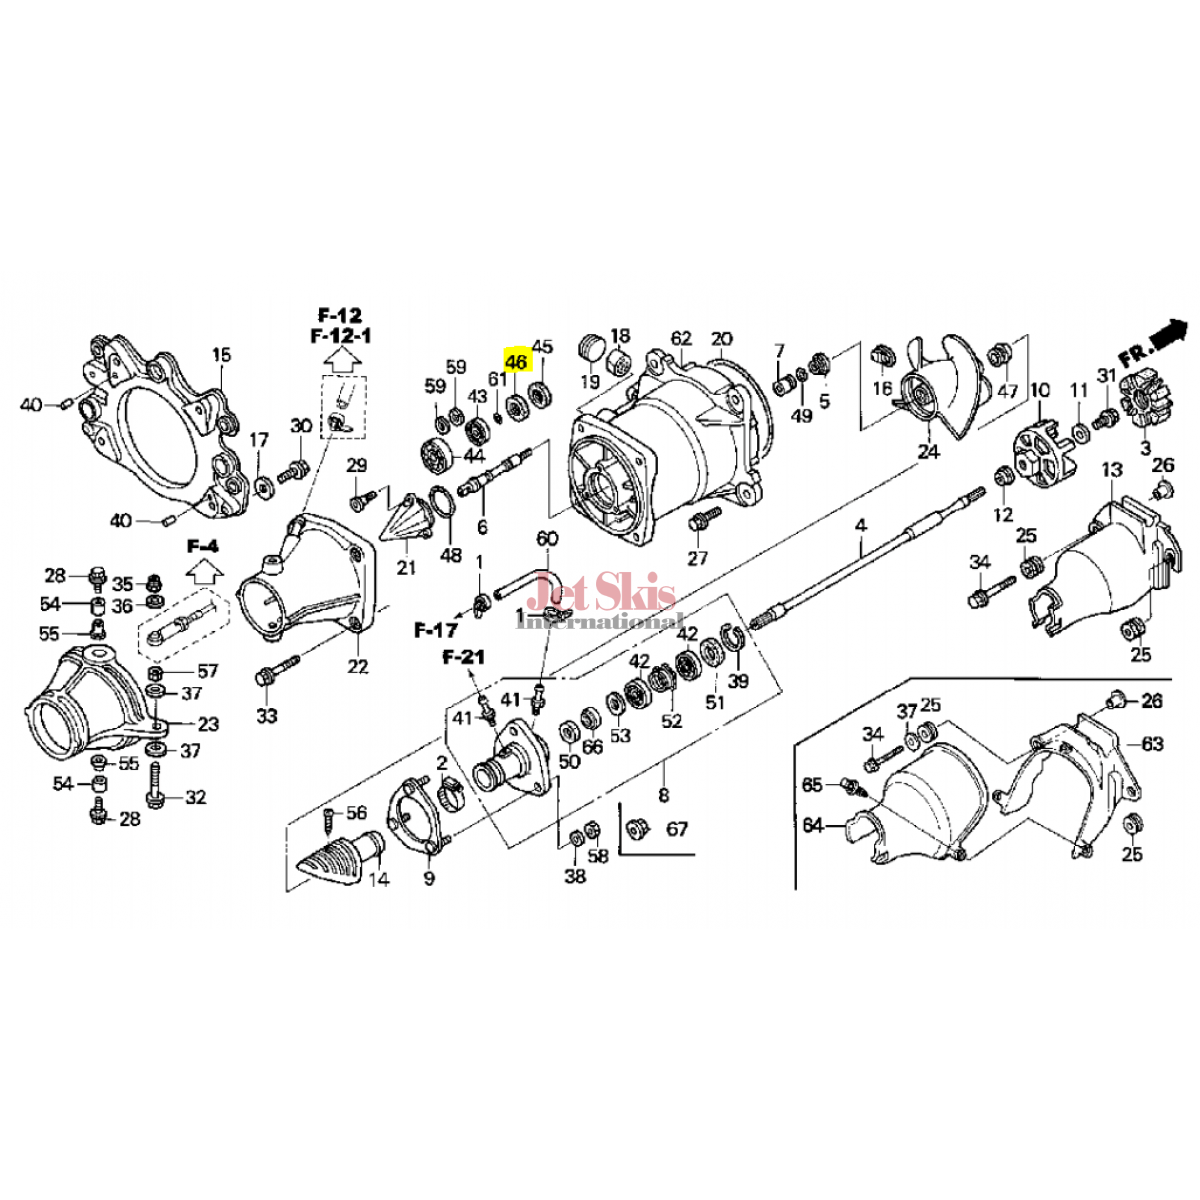 Rt100 Wiring Diagram Auto Electrical 97 Carb Yamaha 2stroke Thumpertalk 1978 Xs750 1979